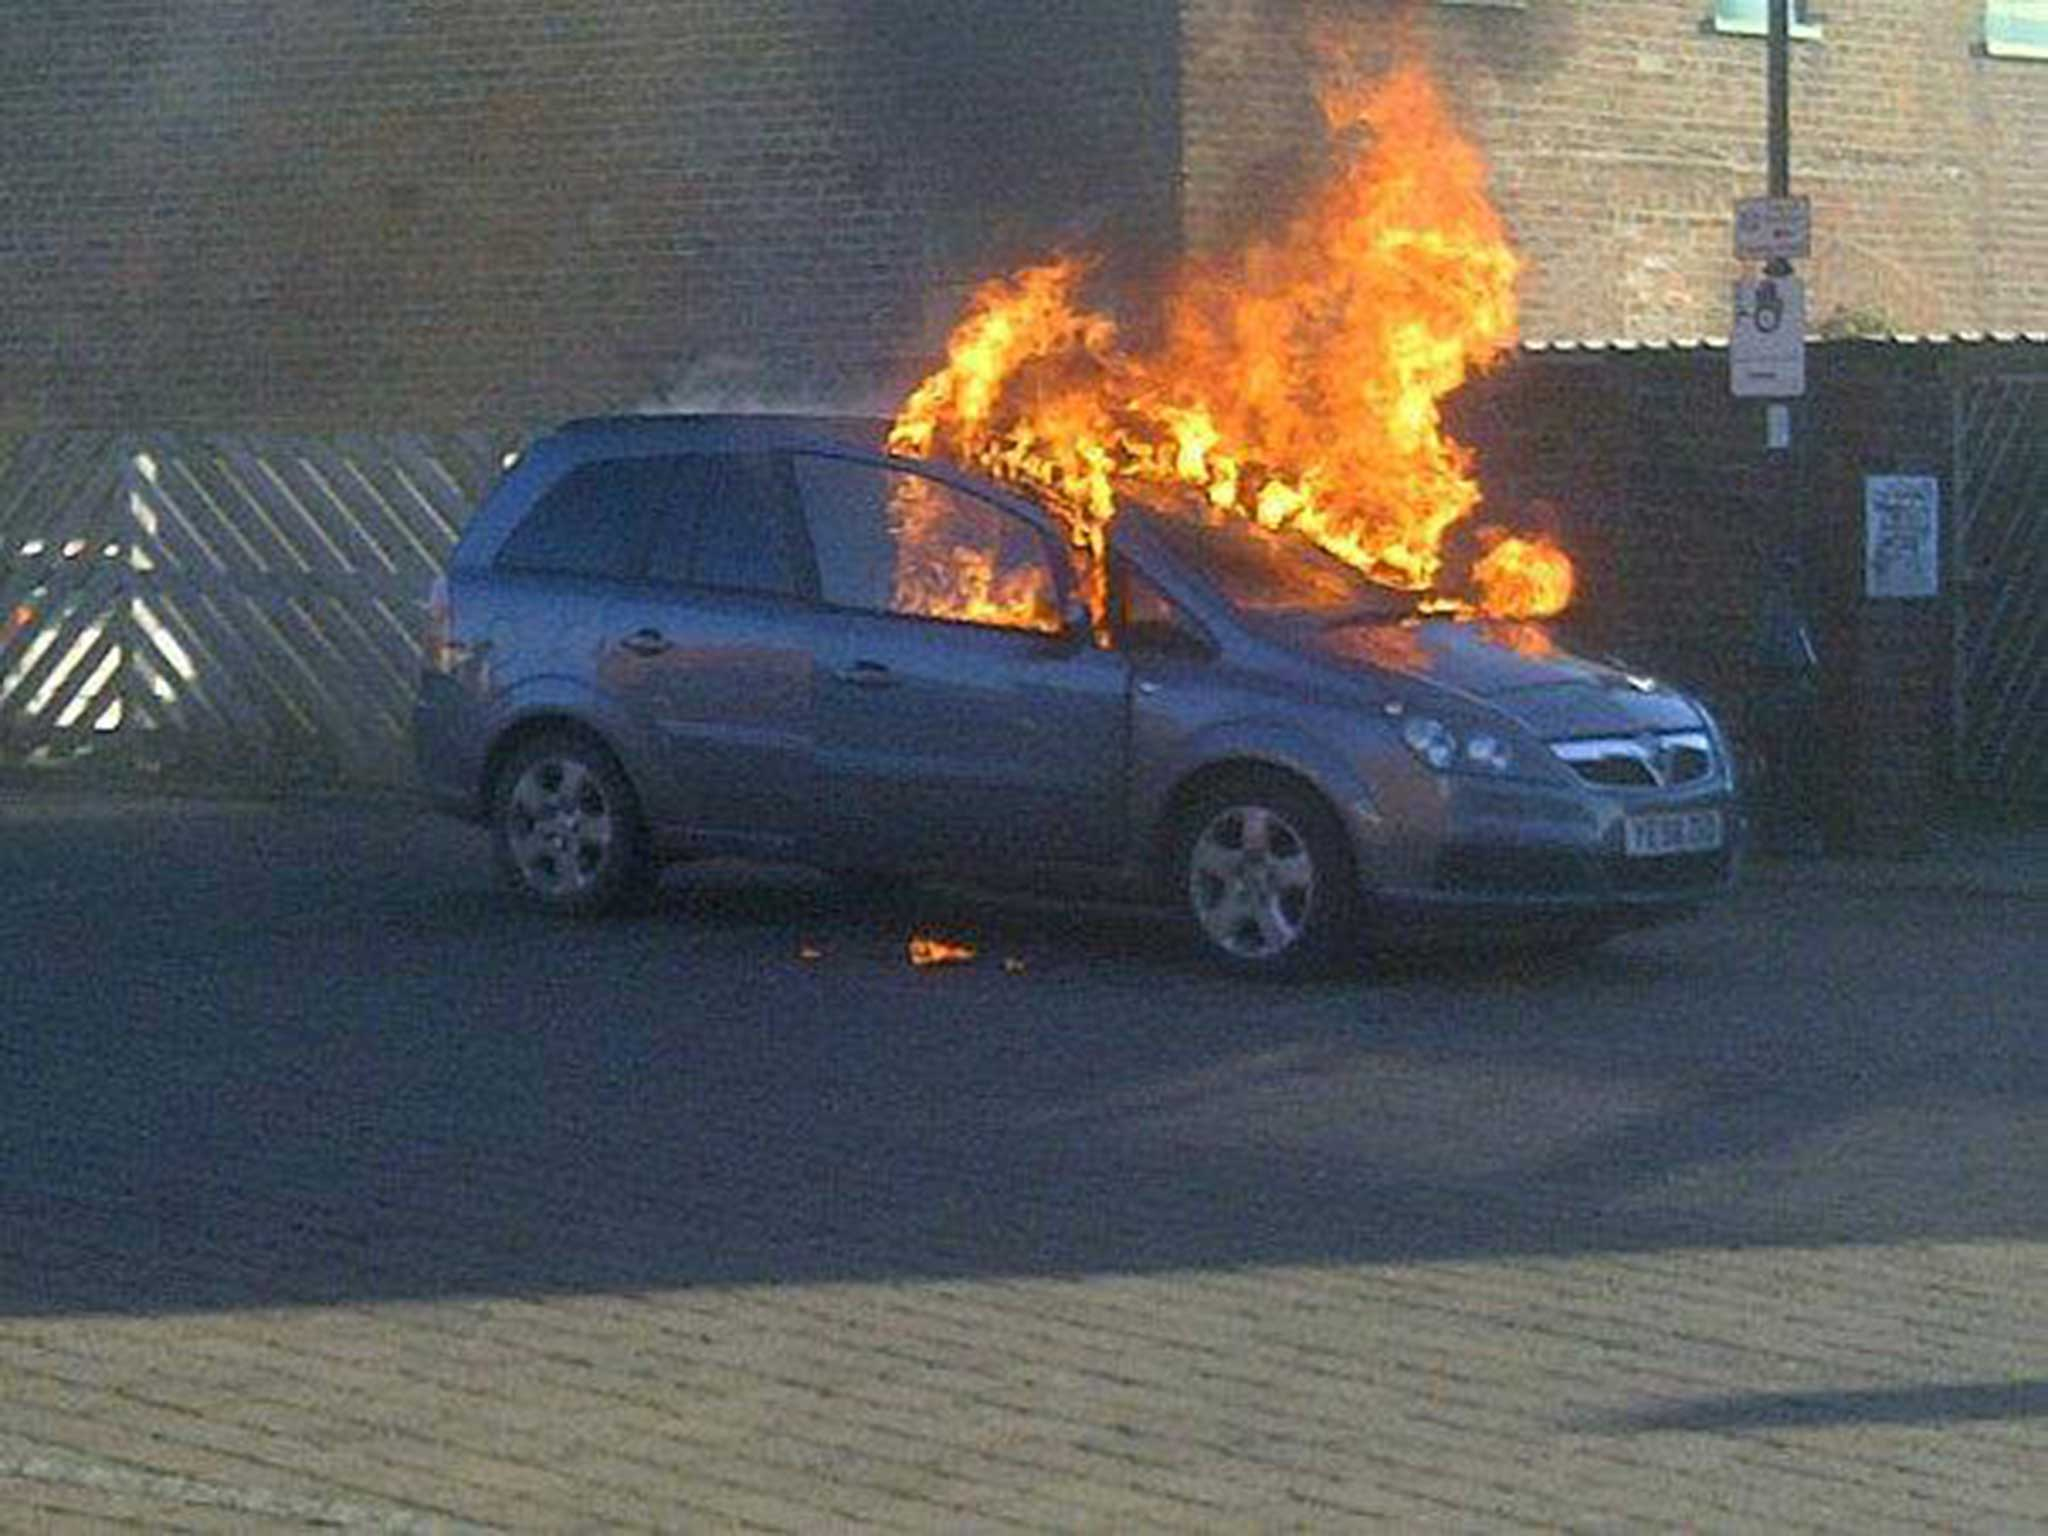 Zafira Fuse Box Fault Free Wiring Diagrams Fire Car One Of The Models That Allegedly Spontaneously Caught At